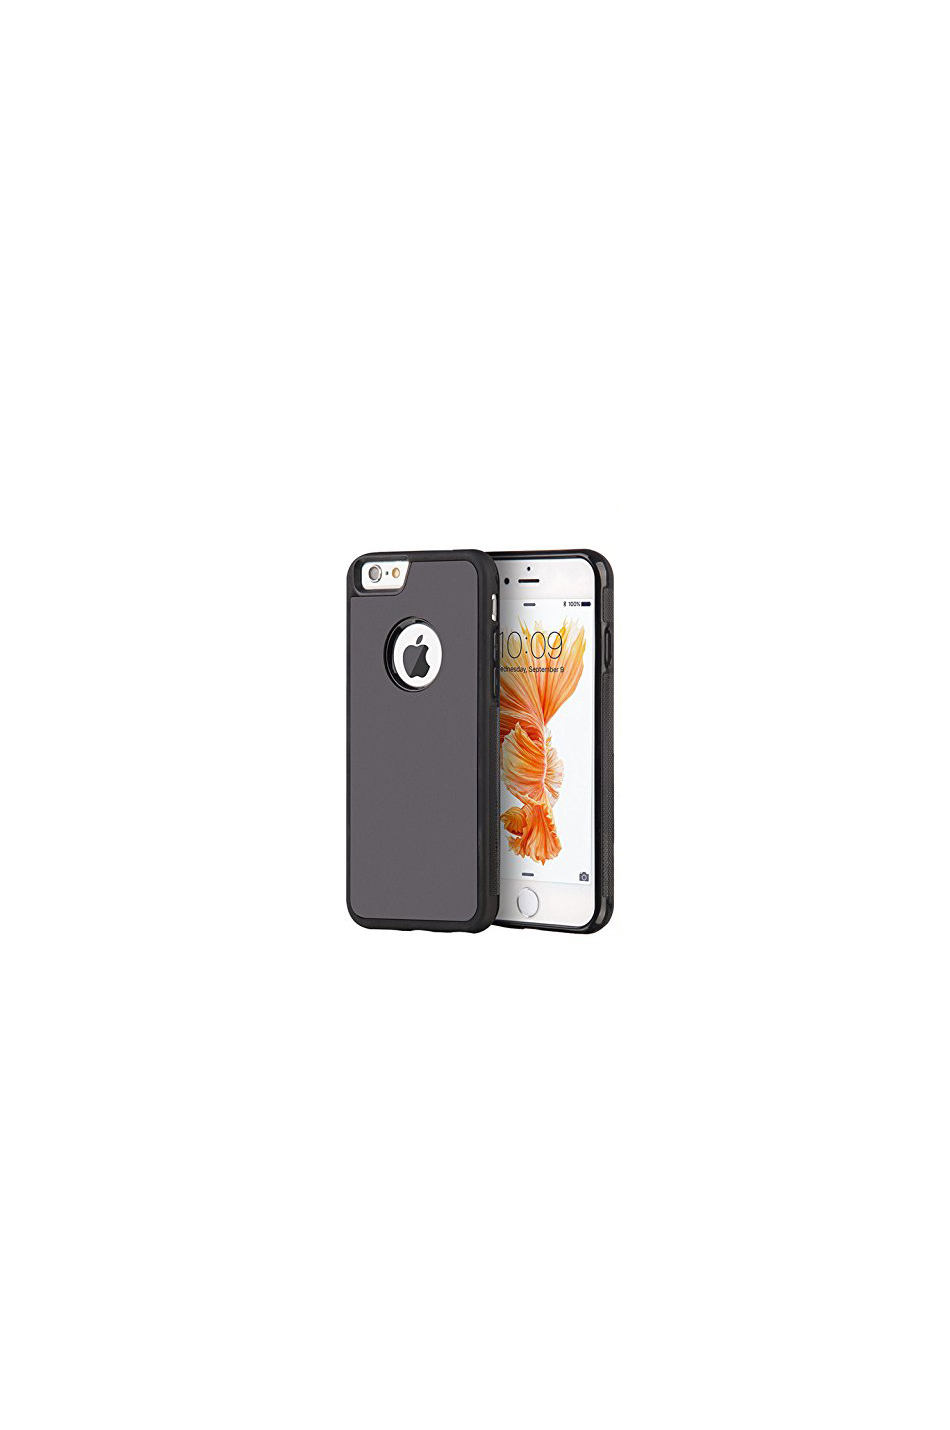 Anti Gravity Case Black Skal från Essentials till iPhone 6S